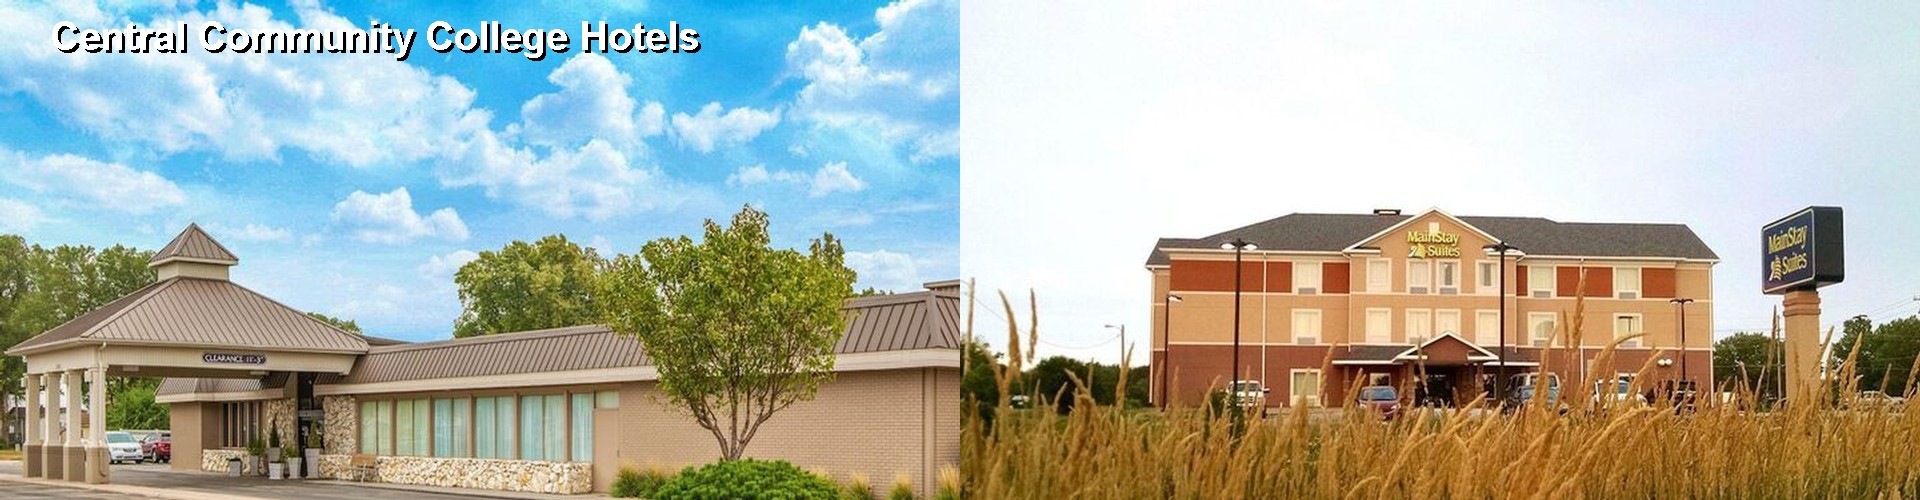 5 Best Hotels near Central Community College